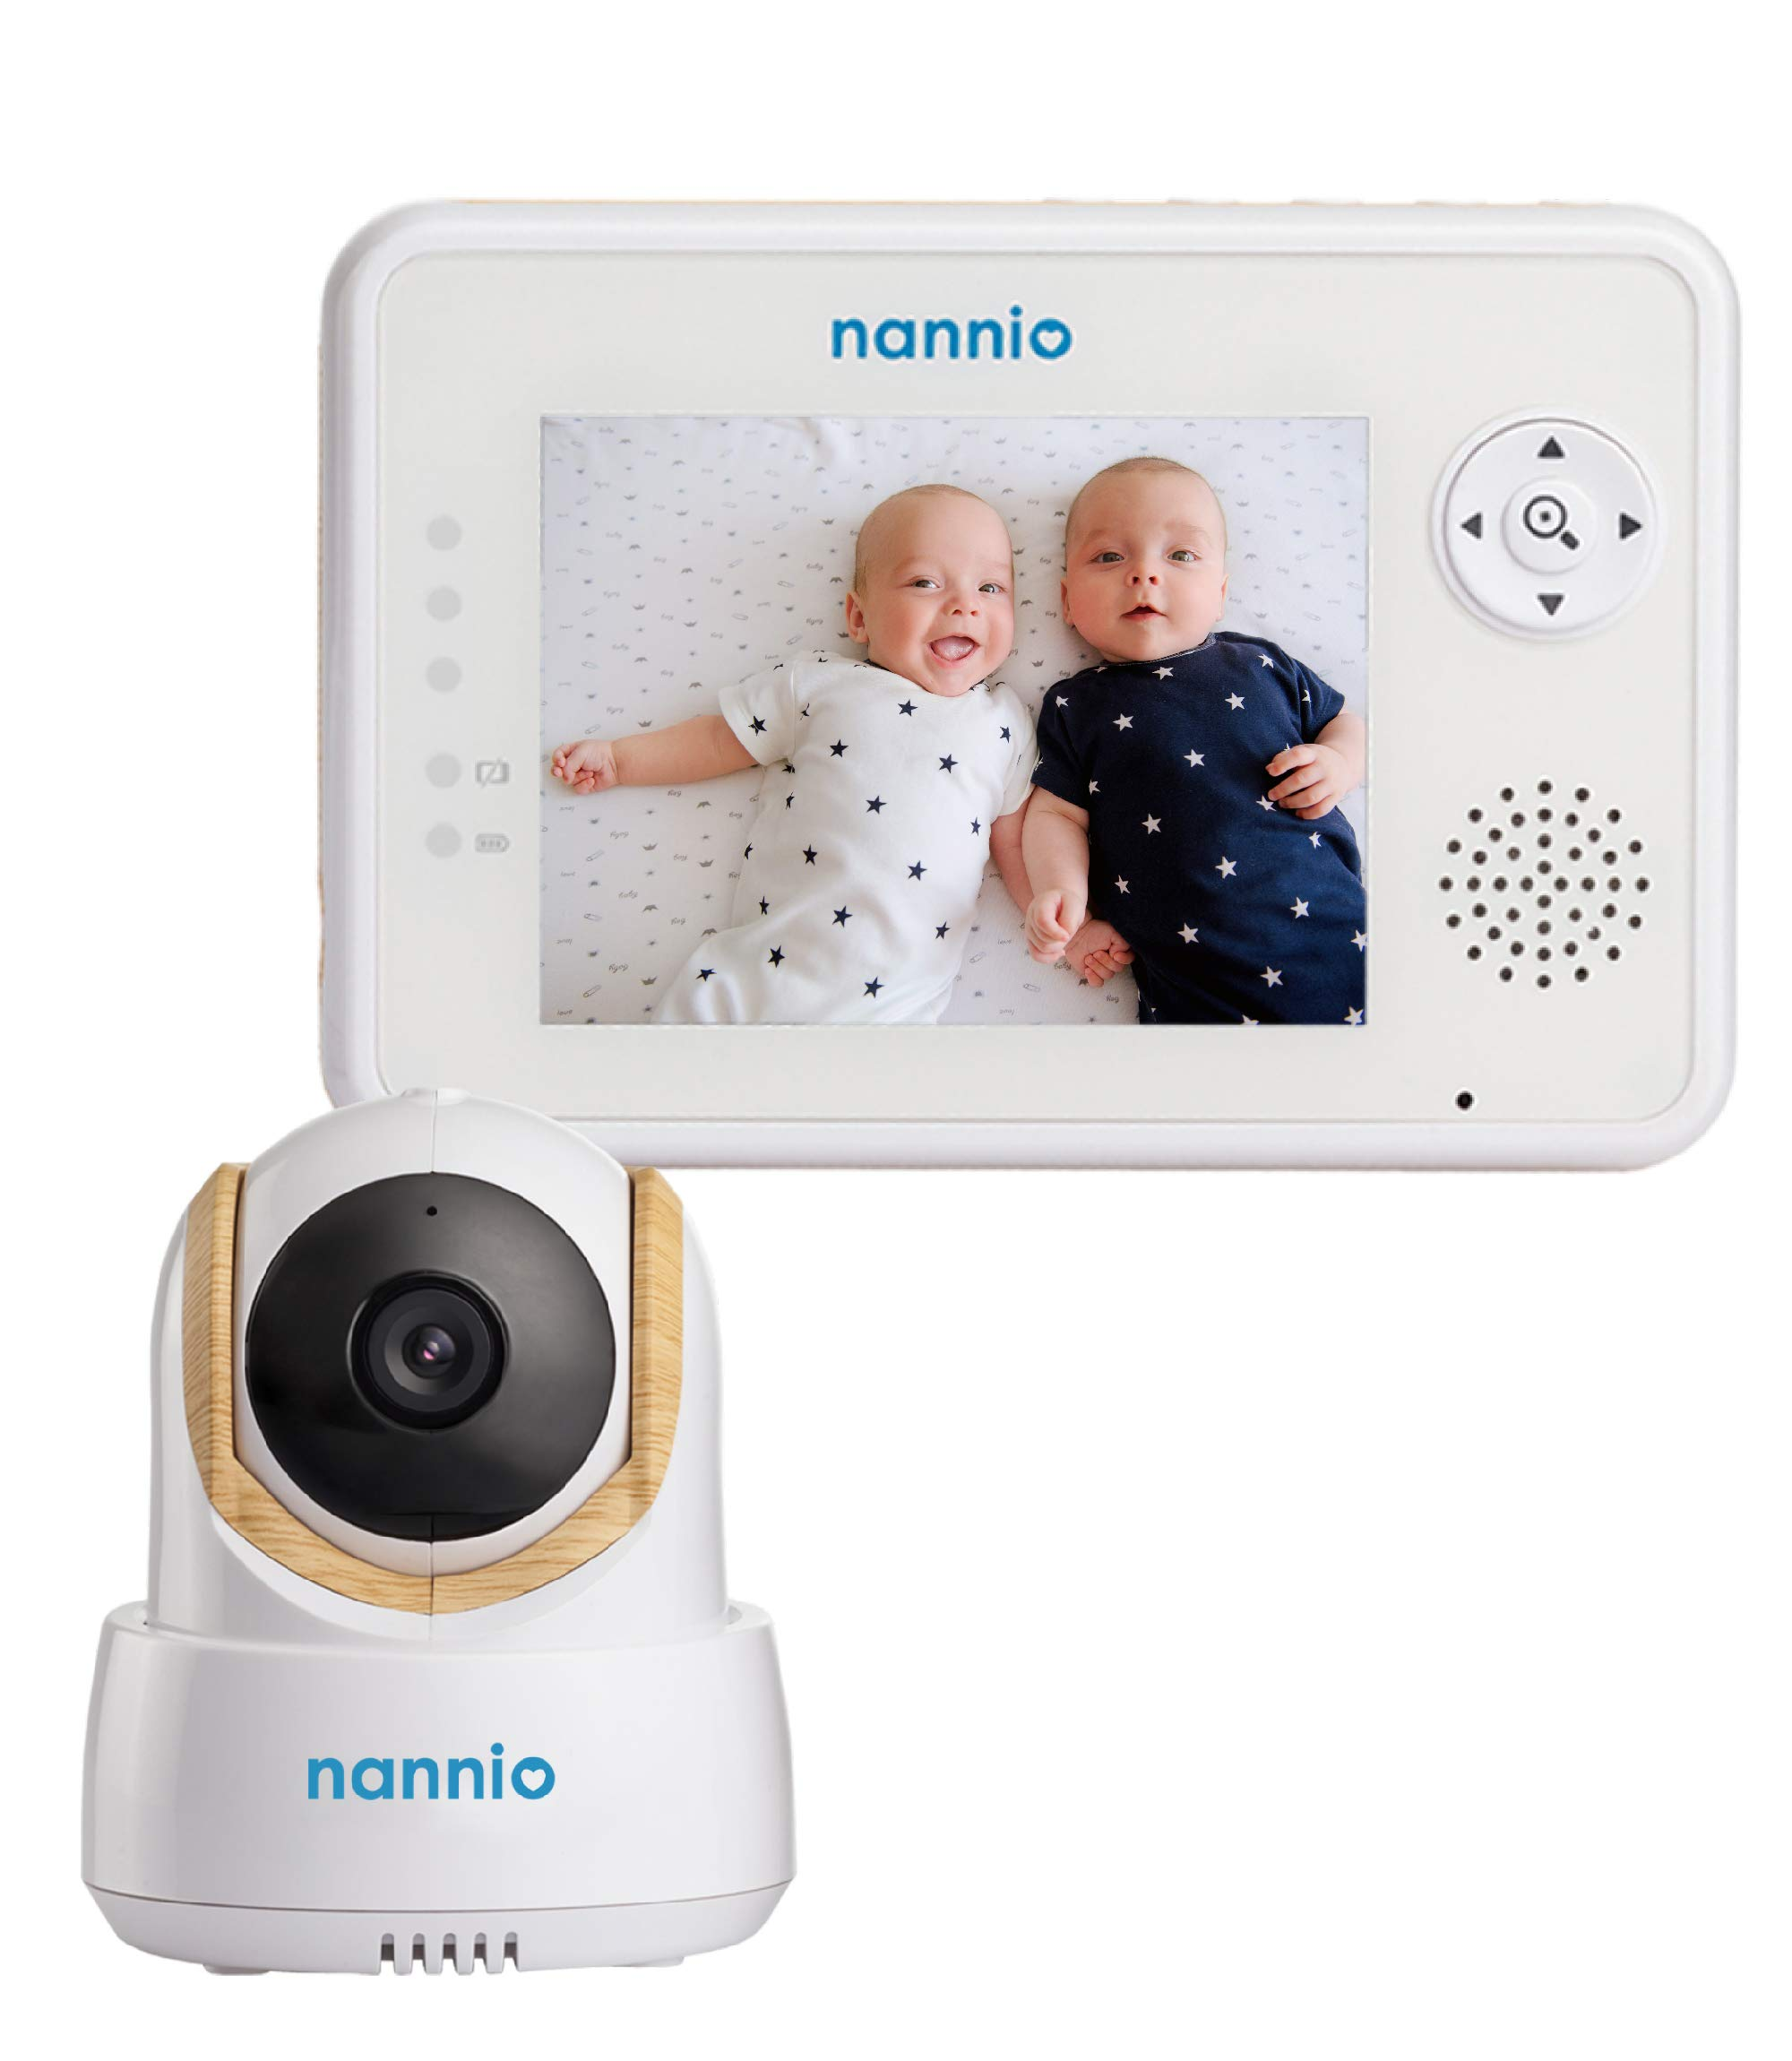 Nannio Comfy Ace Baby Monitor with Remote Pan-Tilt-Zoom Camera and 3.5inch LCD Screen, Infrared Night Vision, VOX, Alarm System, Two Way Talk, Lullaby, Baby Room Temperature